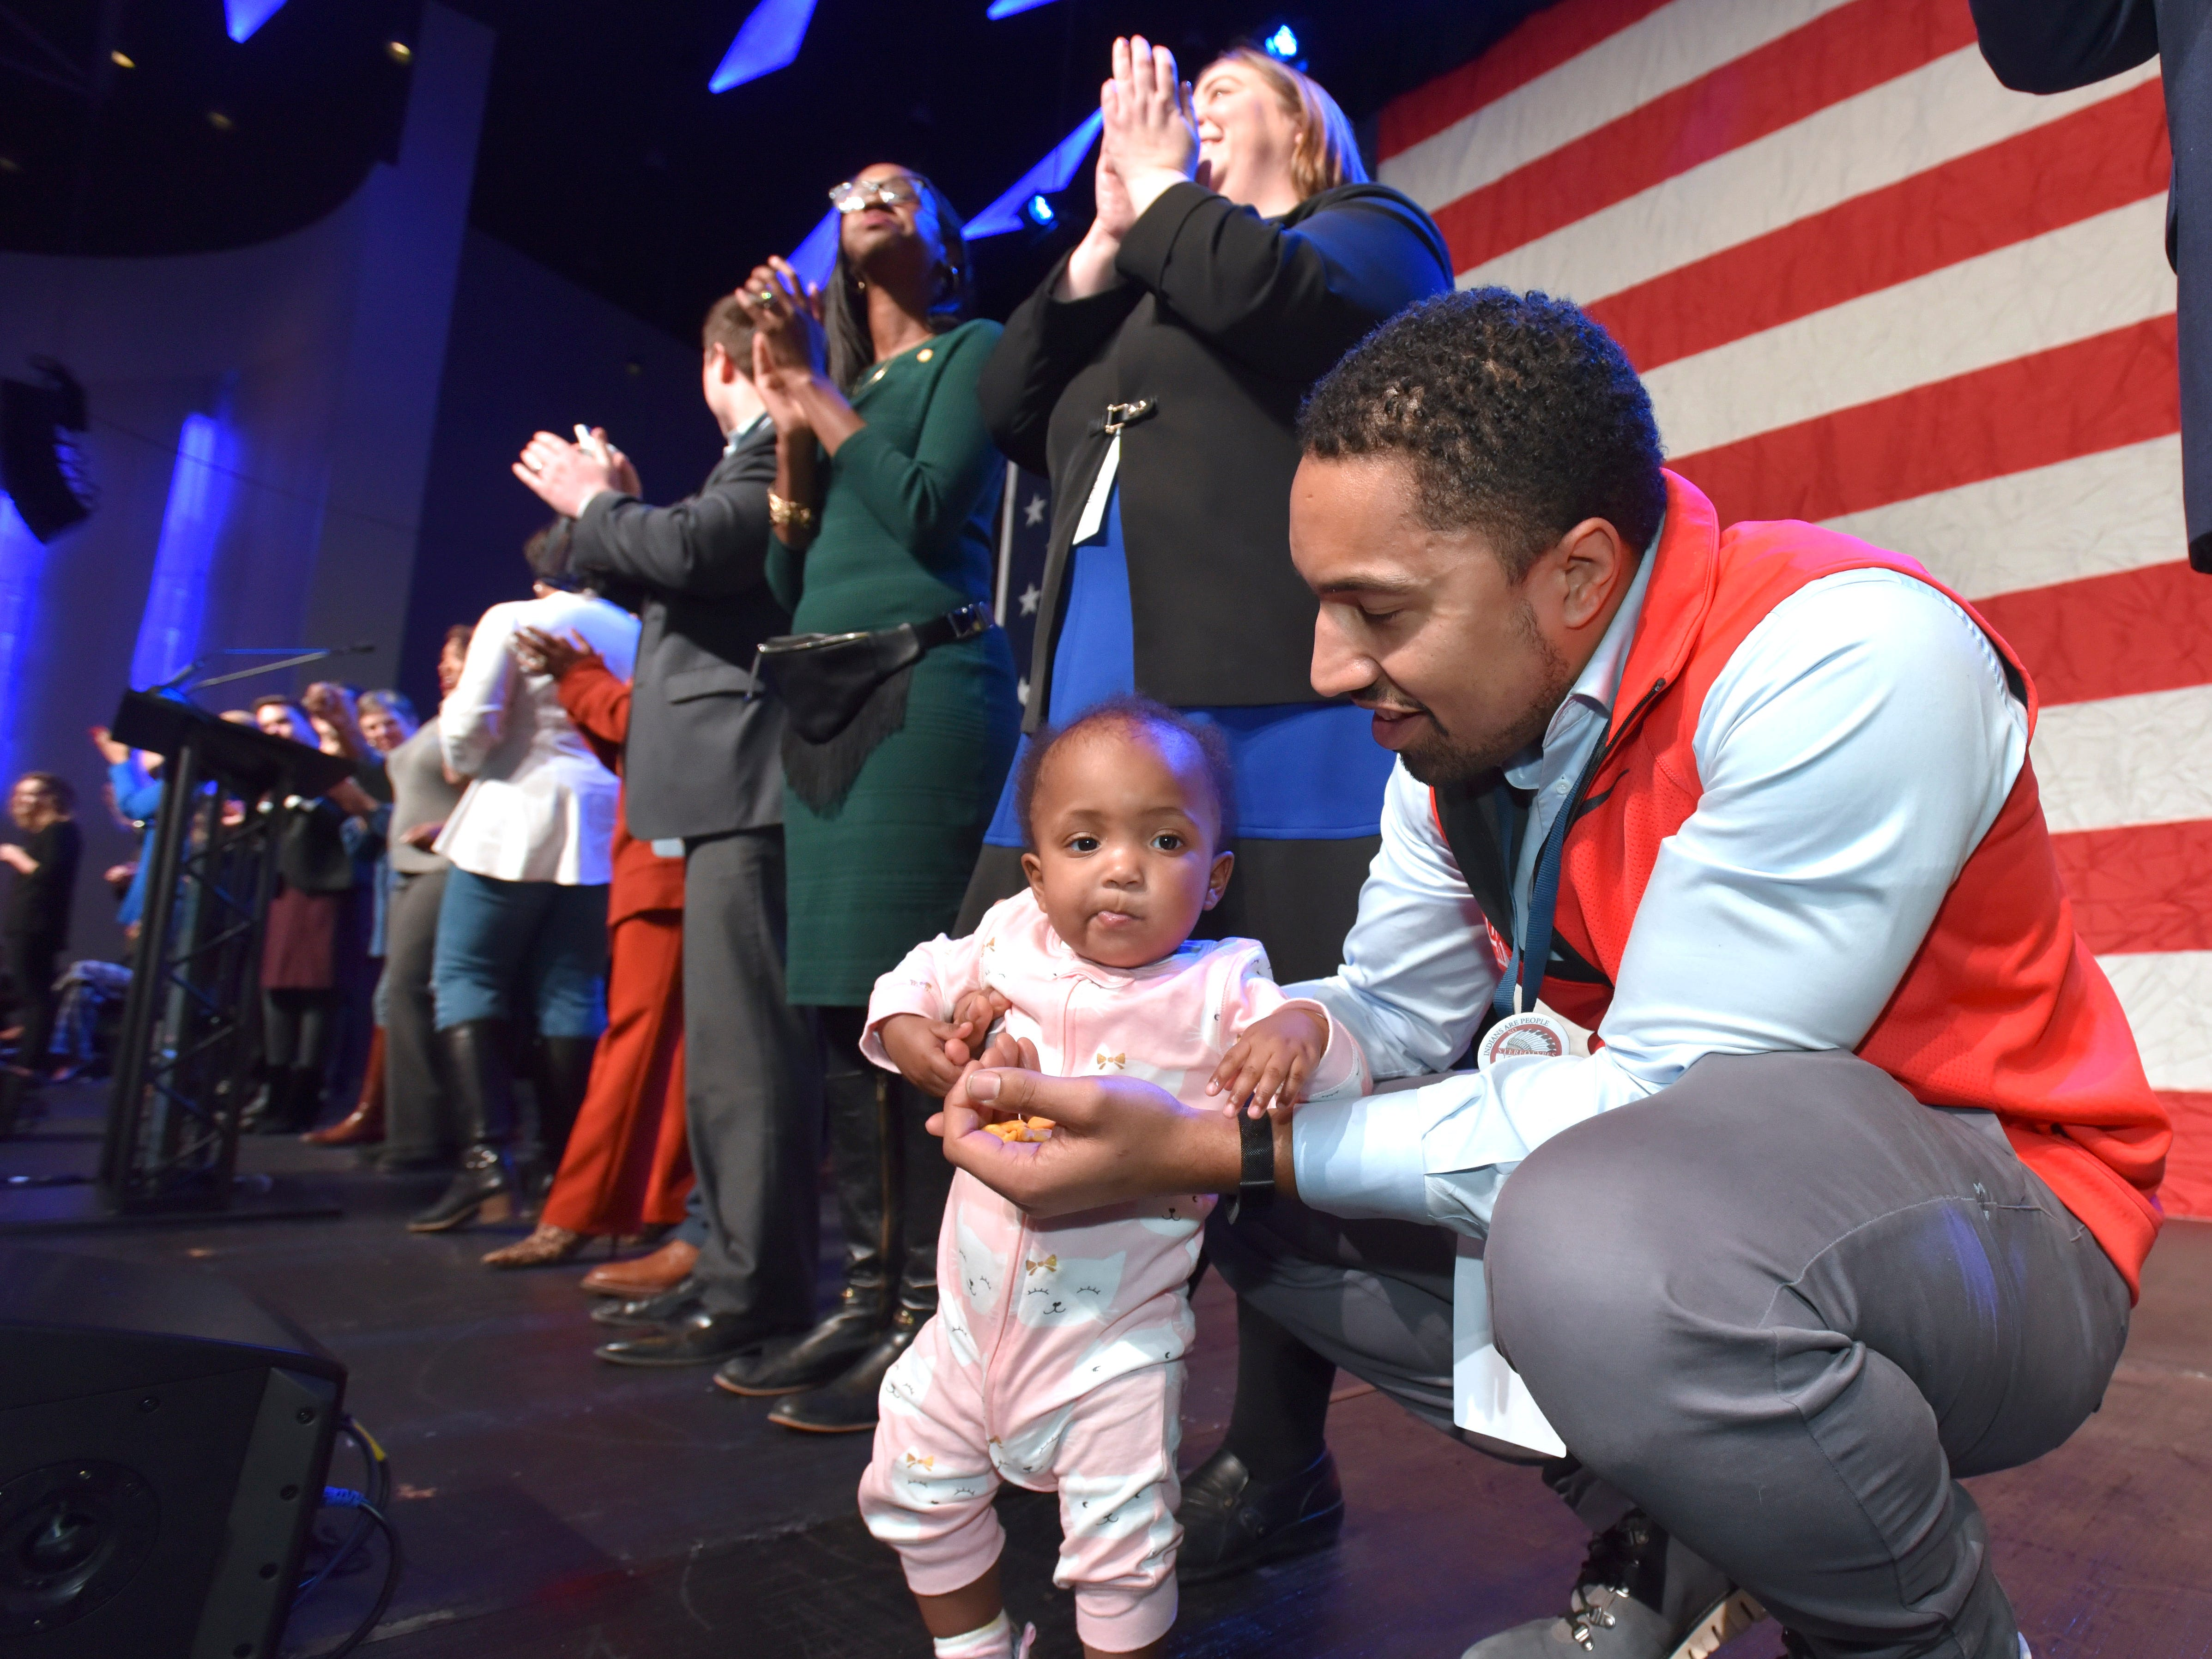 State Senator Adam Hollier tends to his one-year-old daughter, Lillian Hollier, as state senators and representatives are recognized on stage.